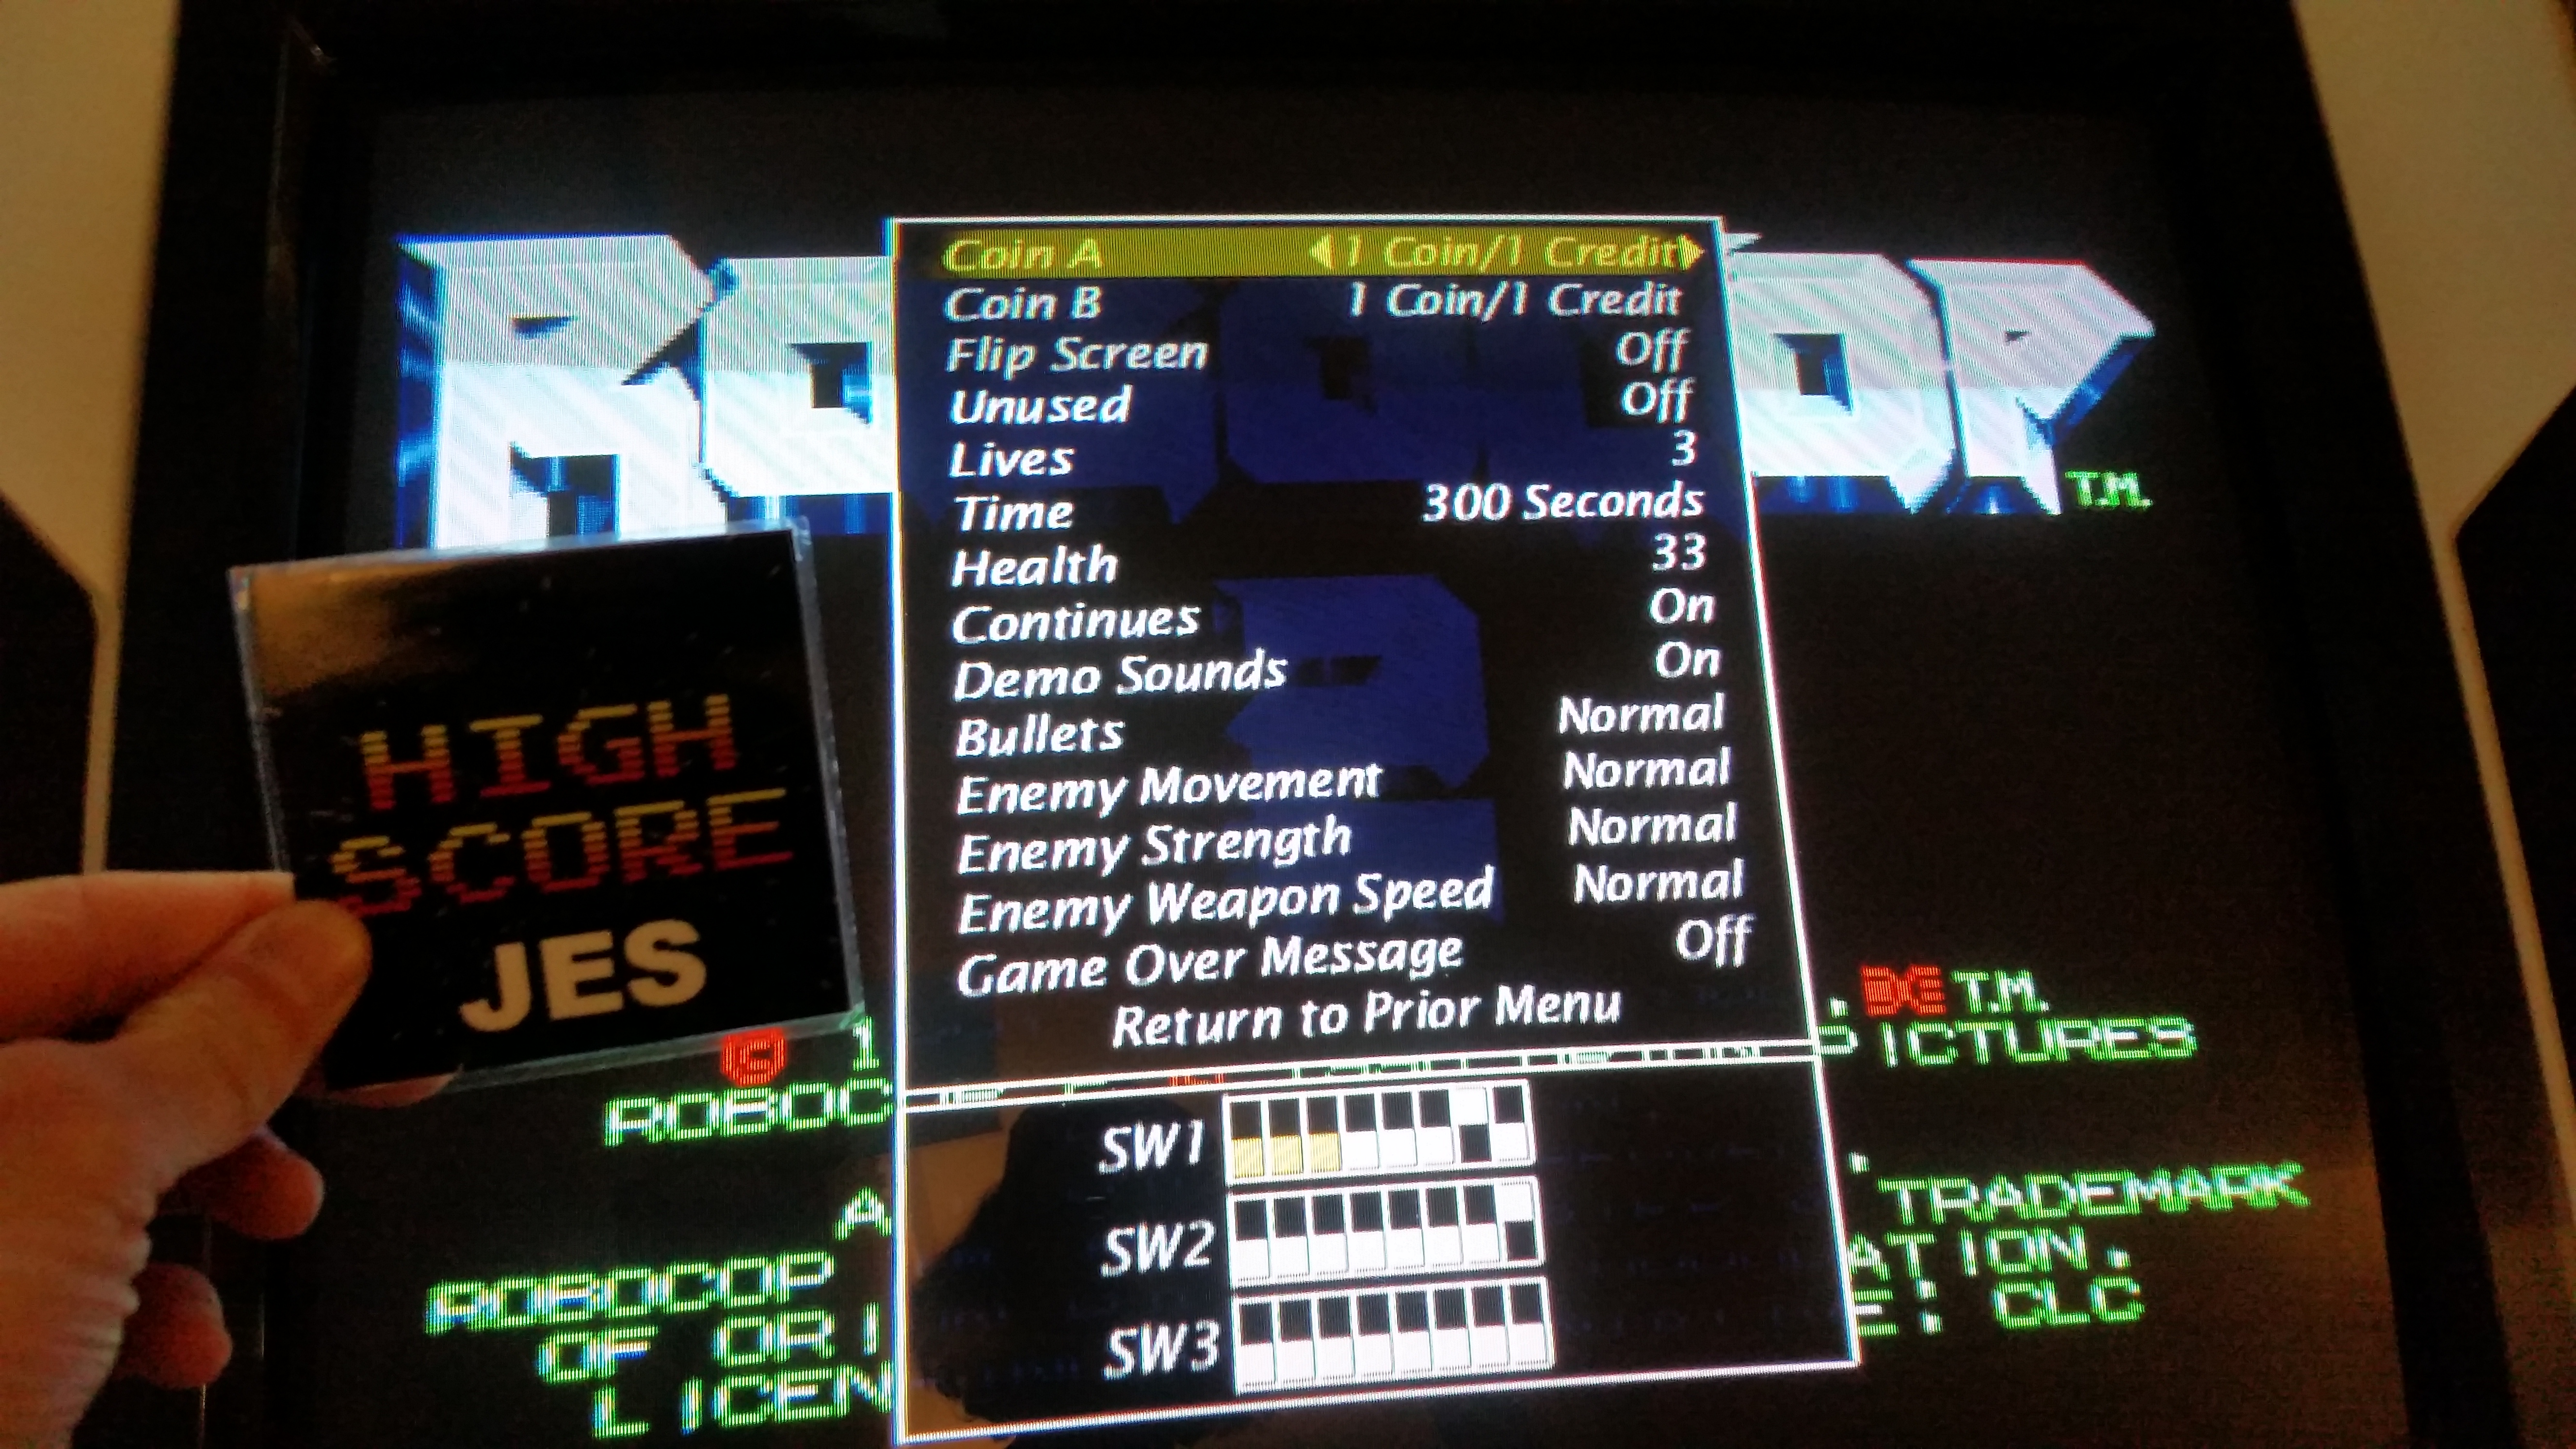 Robocop 2 [robocop2	] 212,600 points